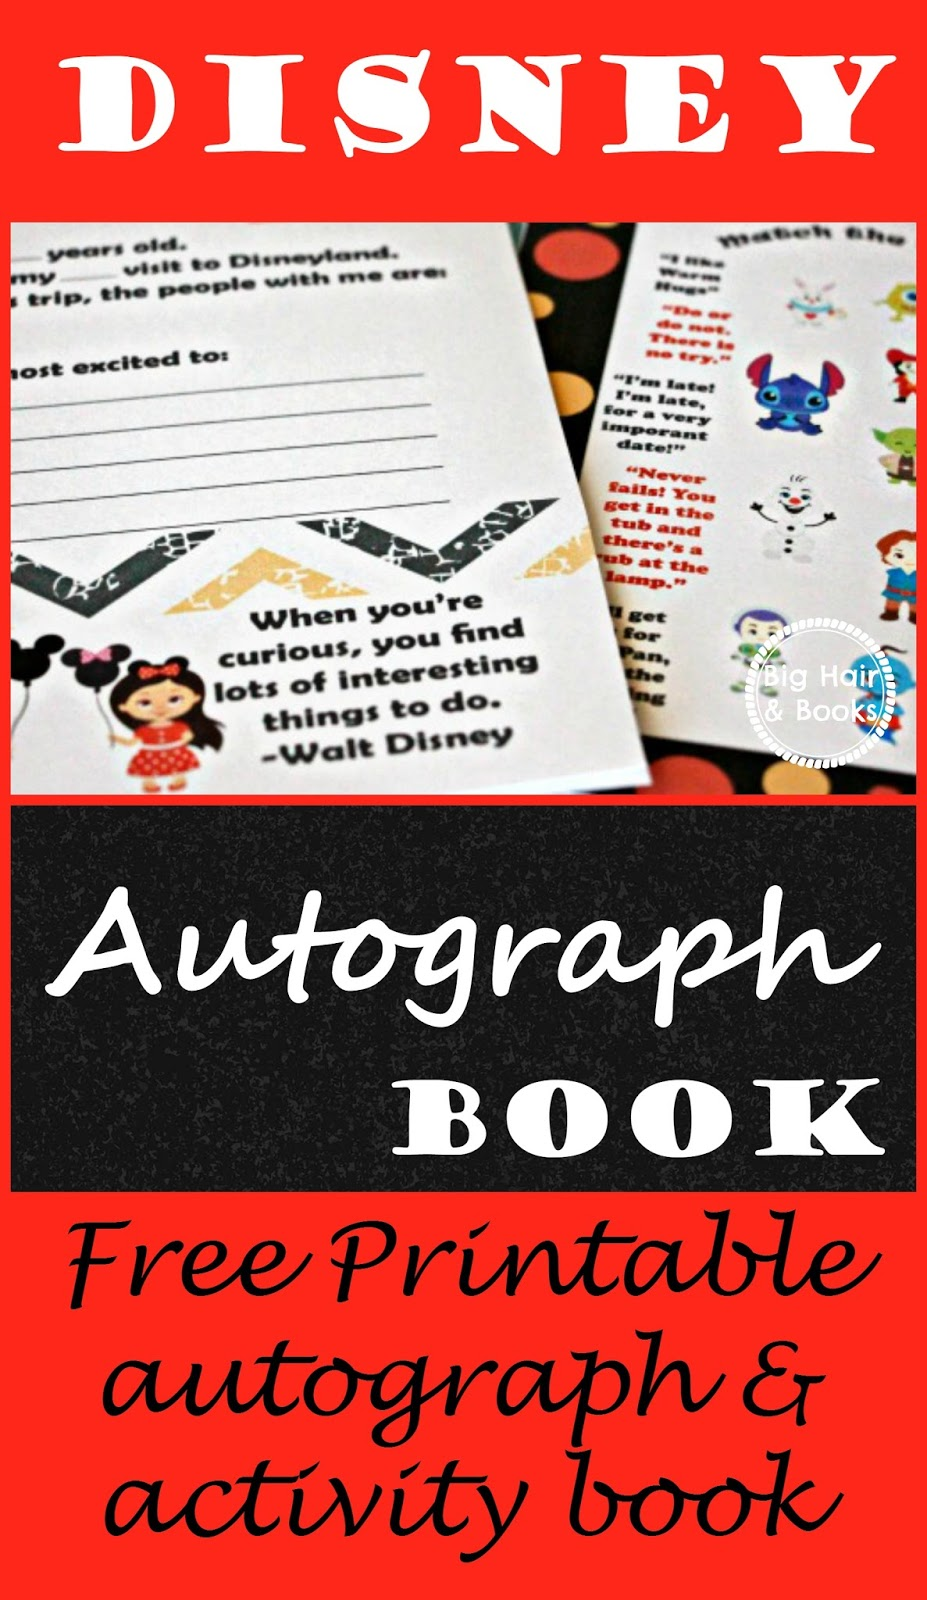 It's just an image of Slobbery Free Printable Autograph Pages